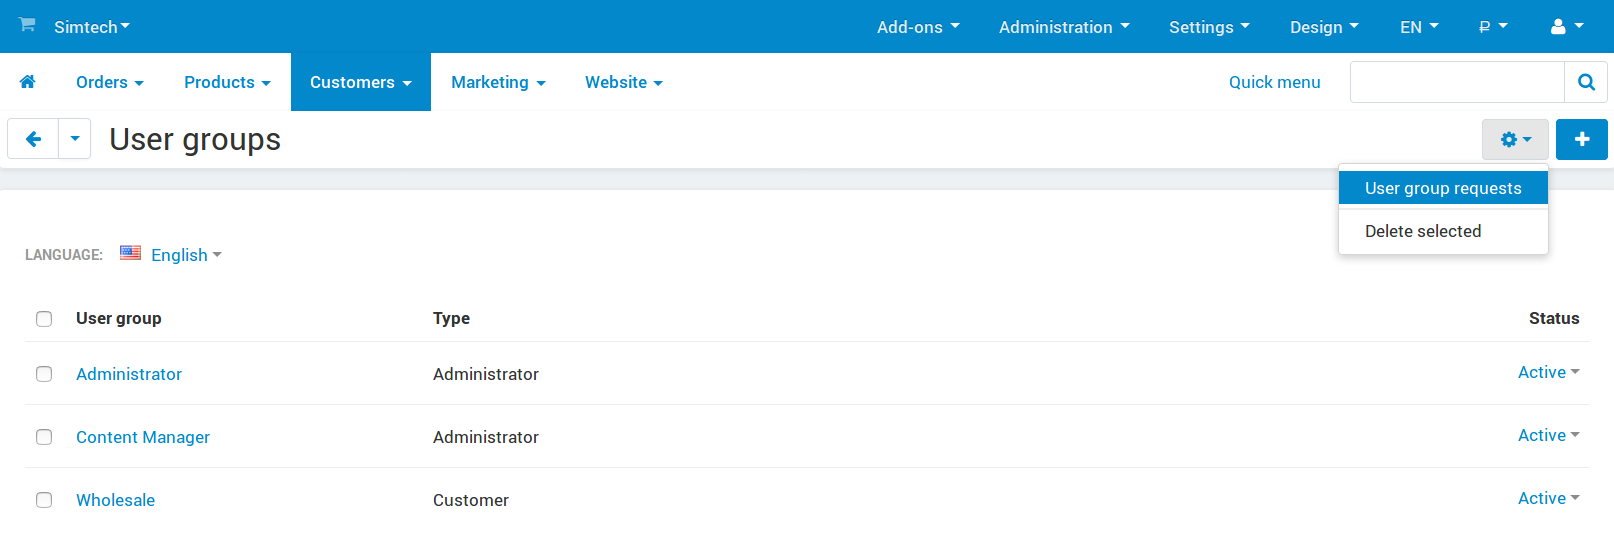 Click on the gear button and choose the User group requests tab to open a list of pending requests.